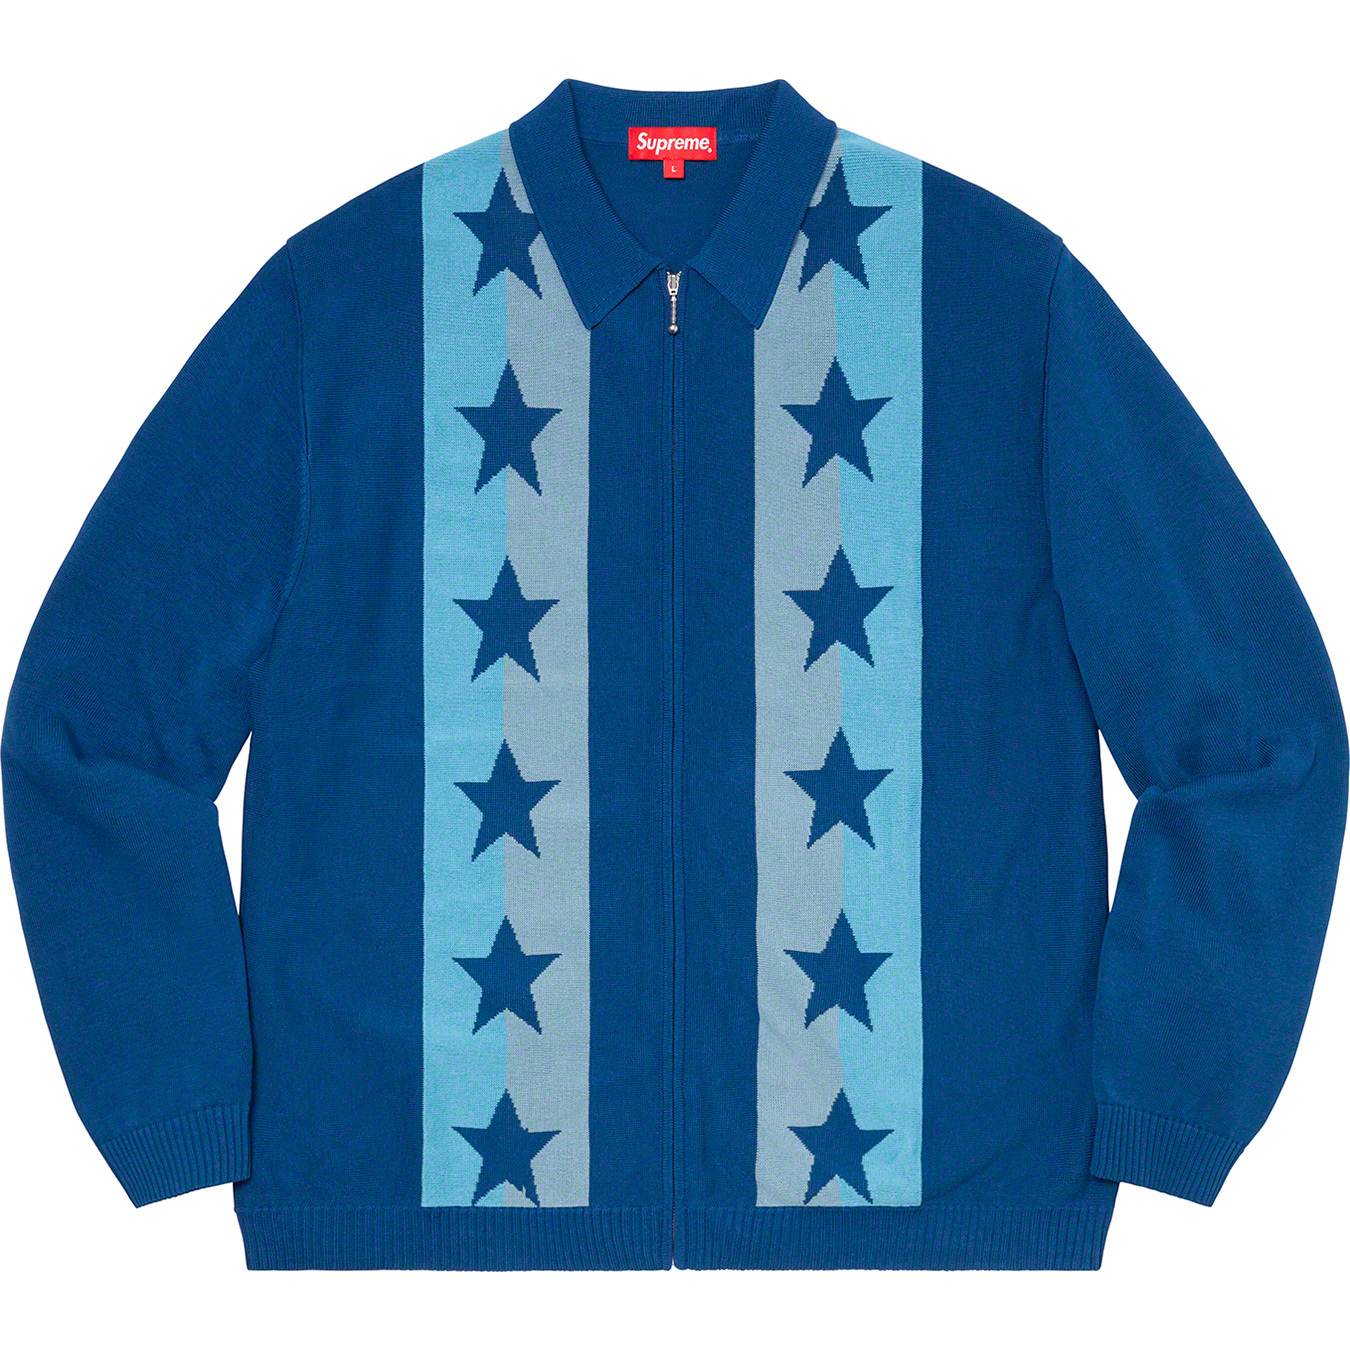 supreme-20ss-spring-summer-stars-zip-up-sweater-polo